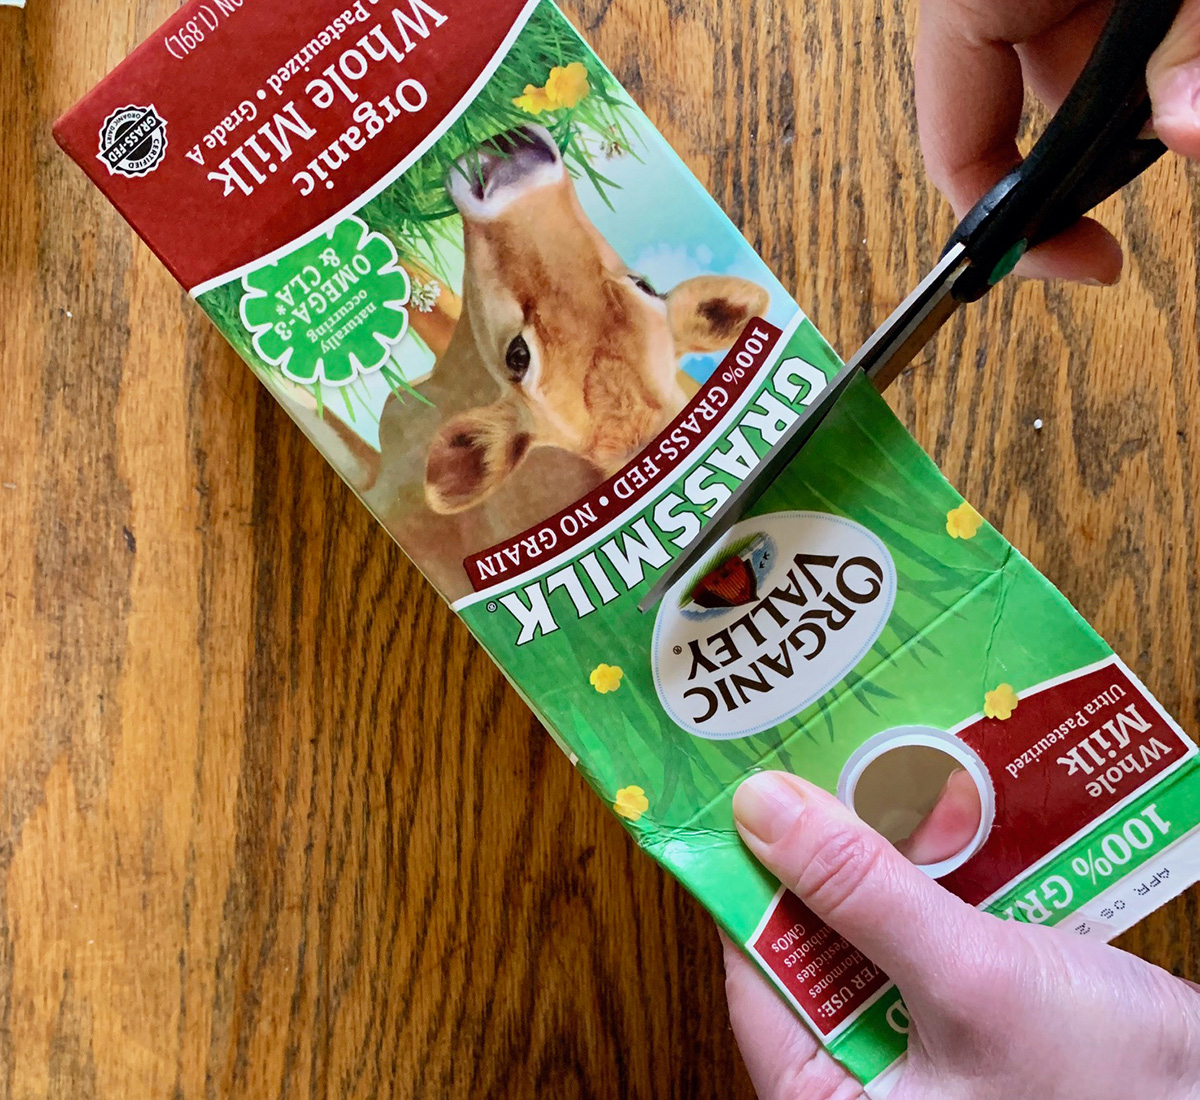 Cutting the Organic Valley Grassmilk carton to hold dirt and seeds.